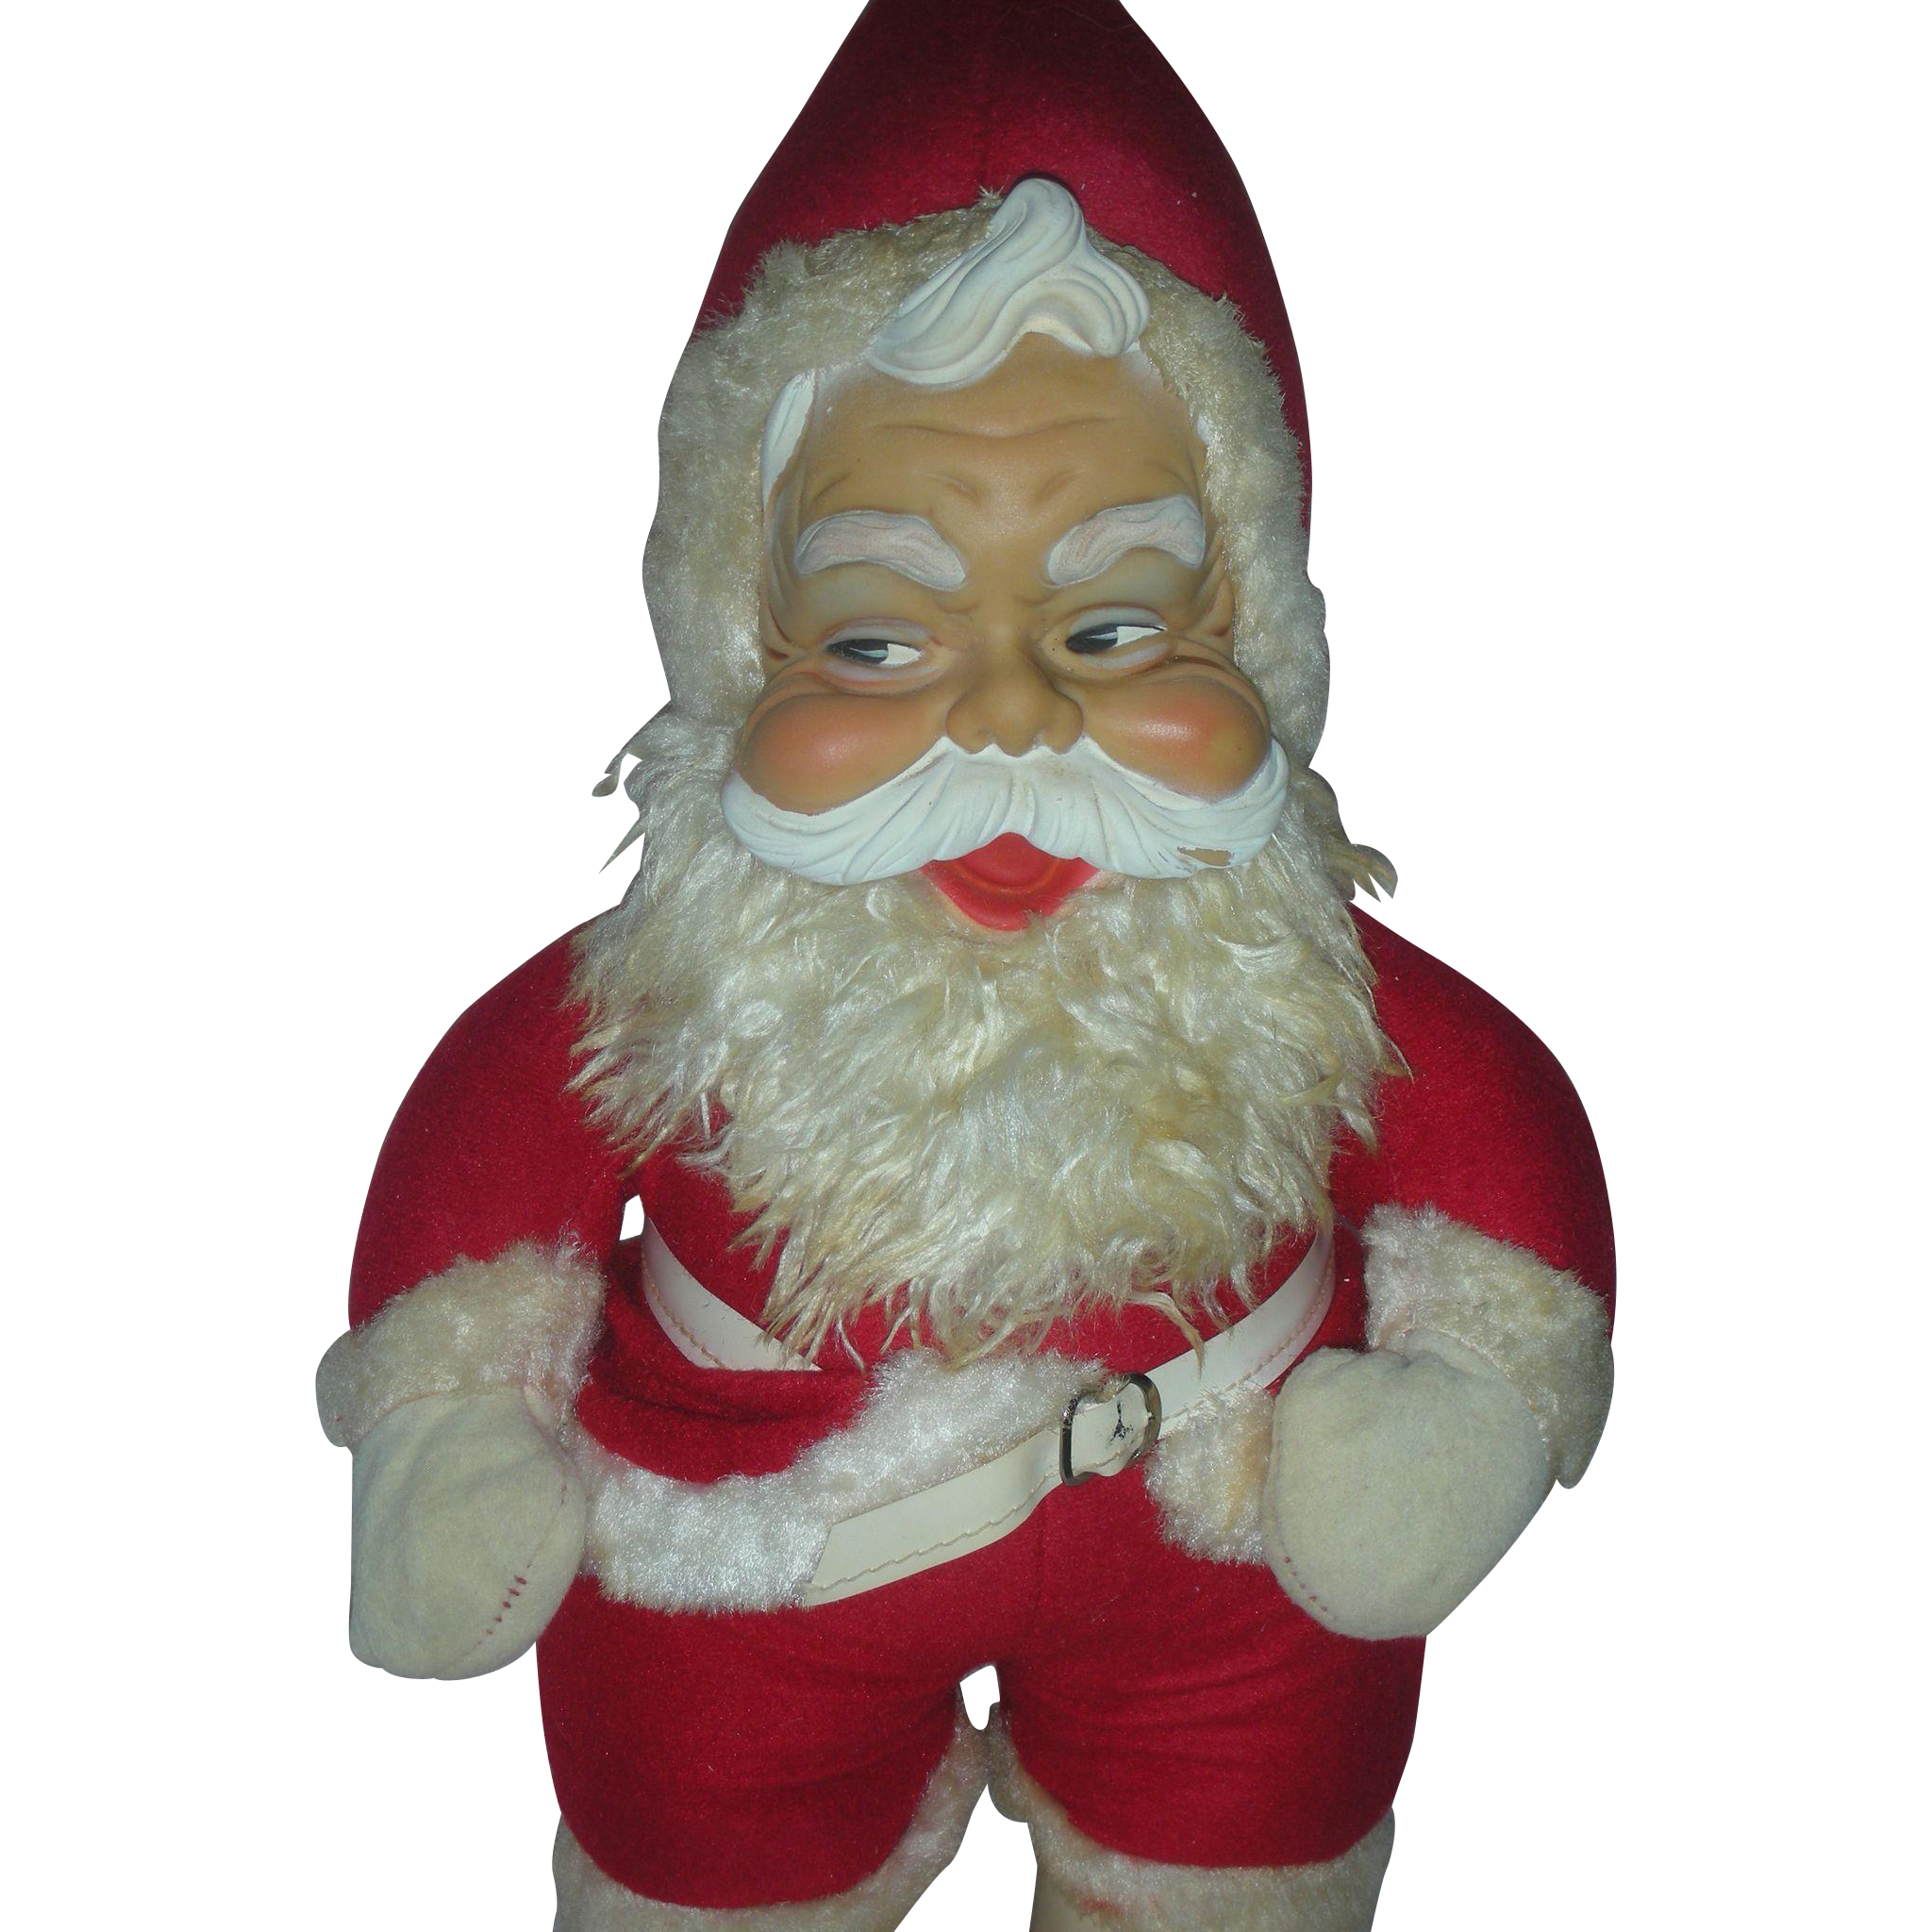 Vintage Rushton Rubber Face Toy Santa Claus